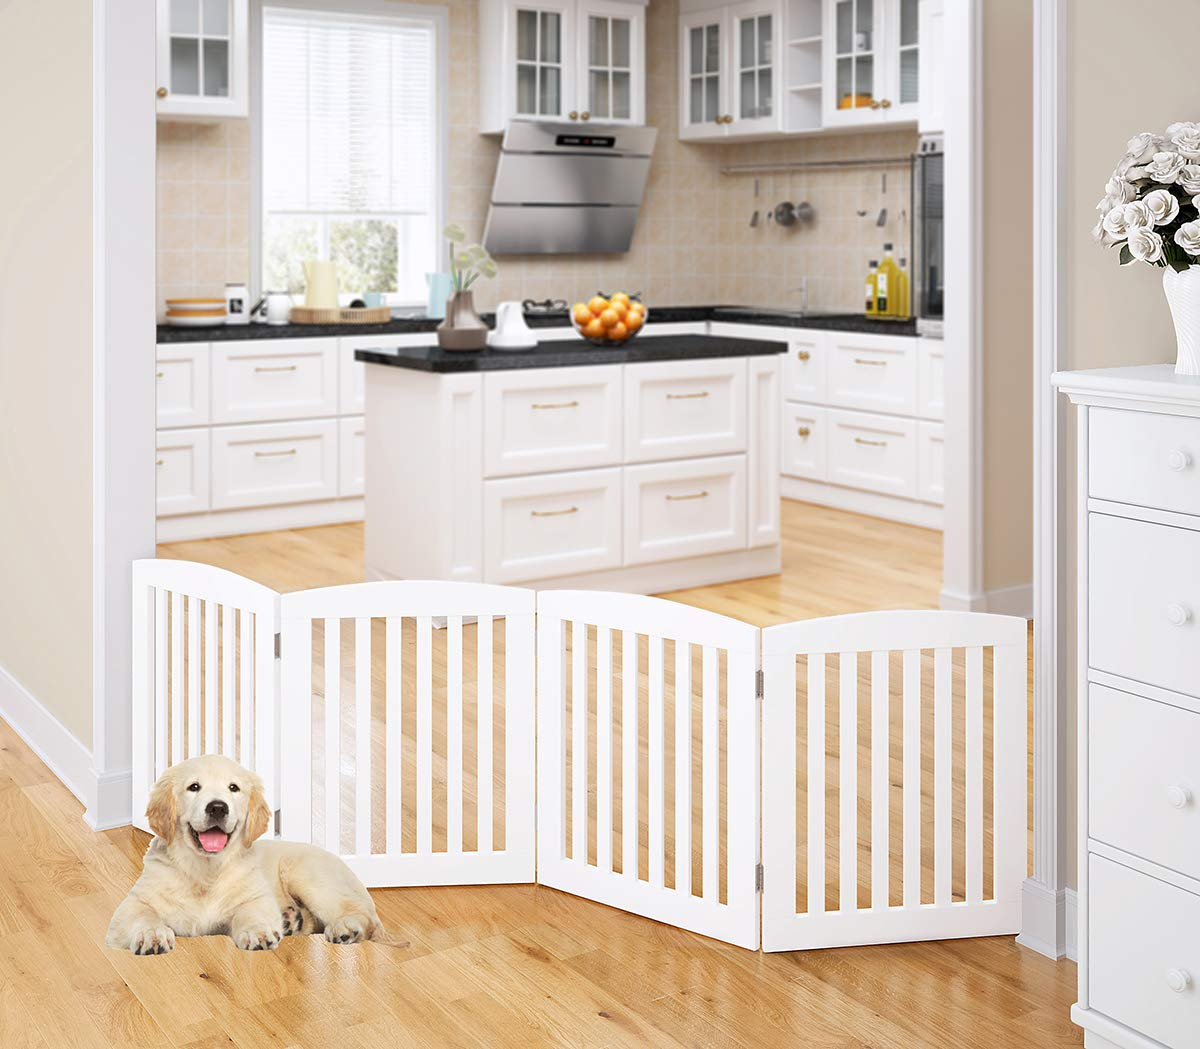 PAWLAND Wooden Freestanding Foldable Pet Gate for Dogs, 24 inch 4 Panel Step Over Fence, Dog Gate for The House, Doorway, Stairs, Extra Wide, White by PAWLAND